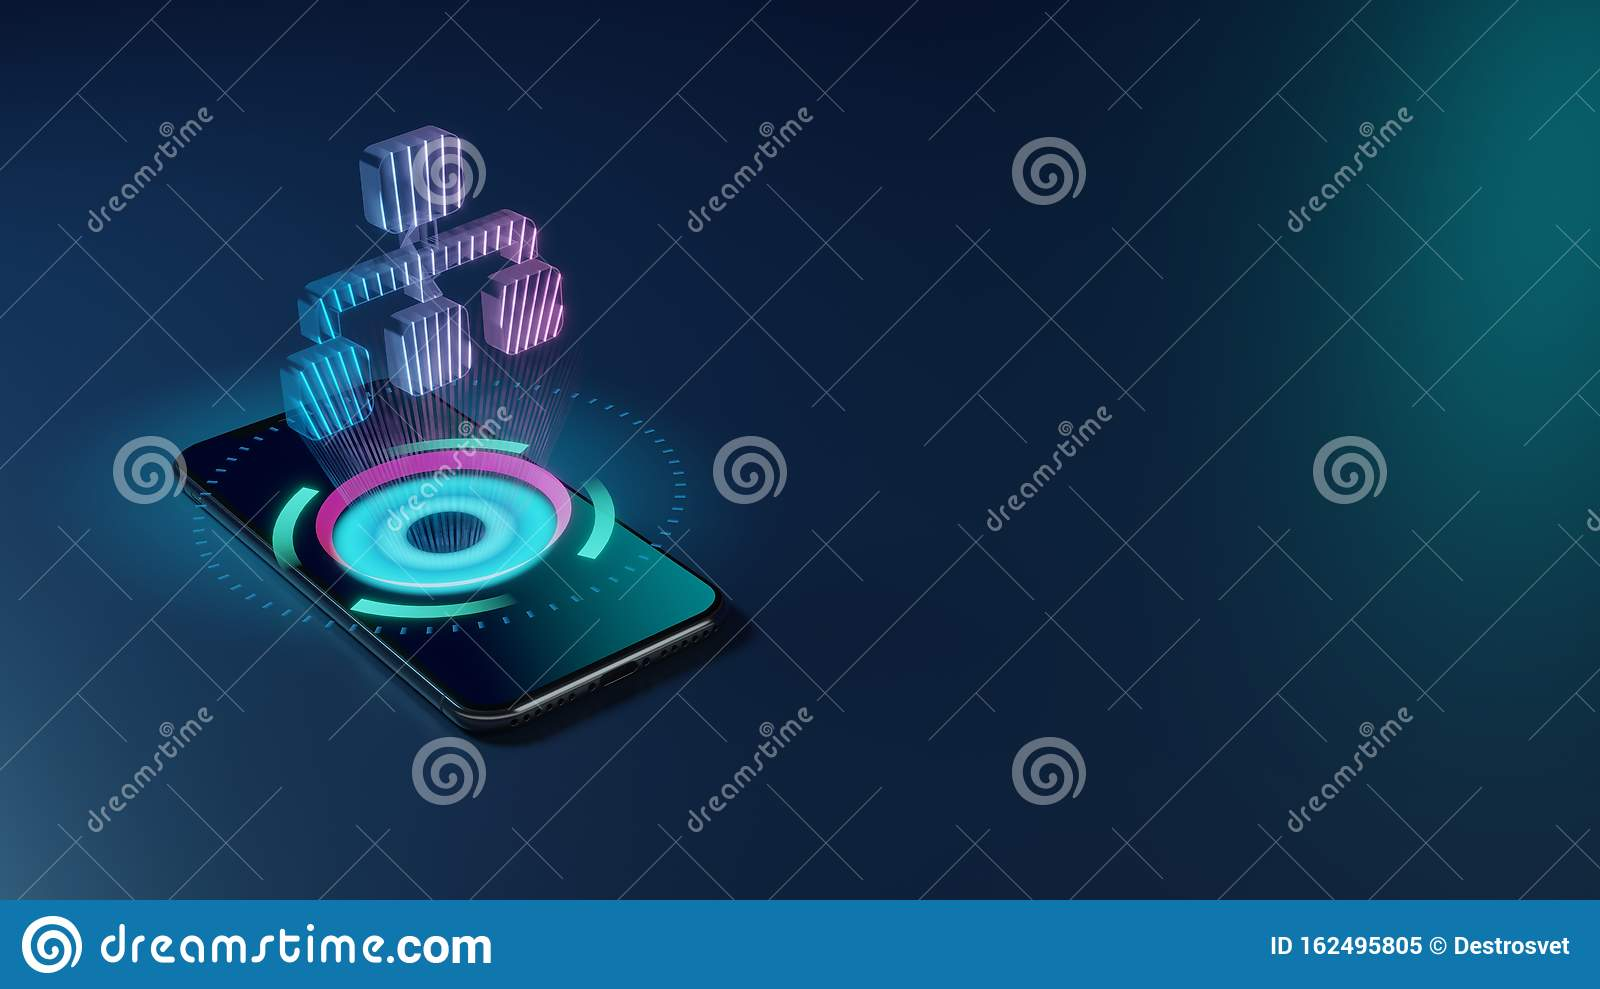 3D rendering neon holographic phone symbol of sitemap icon on dark background